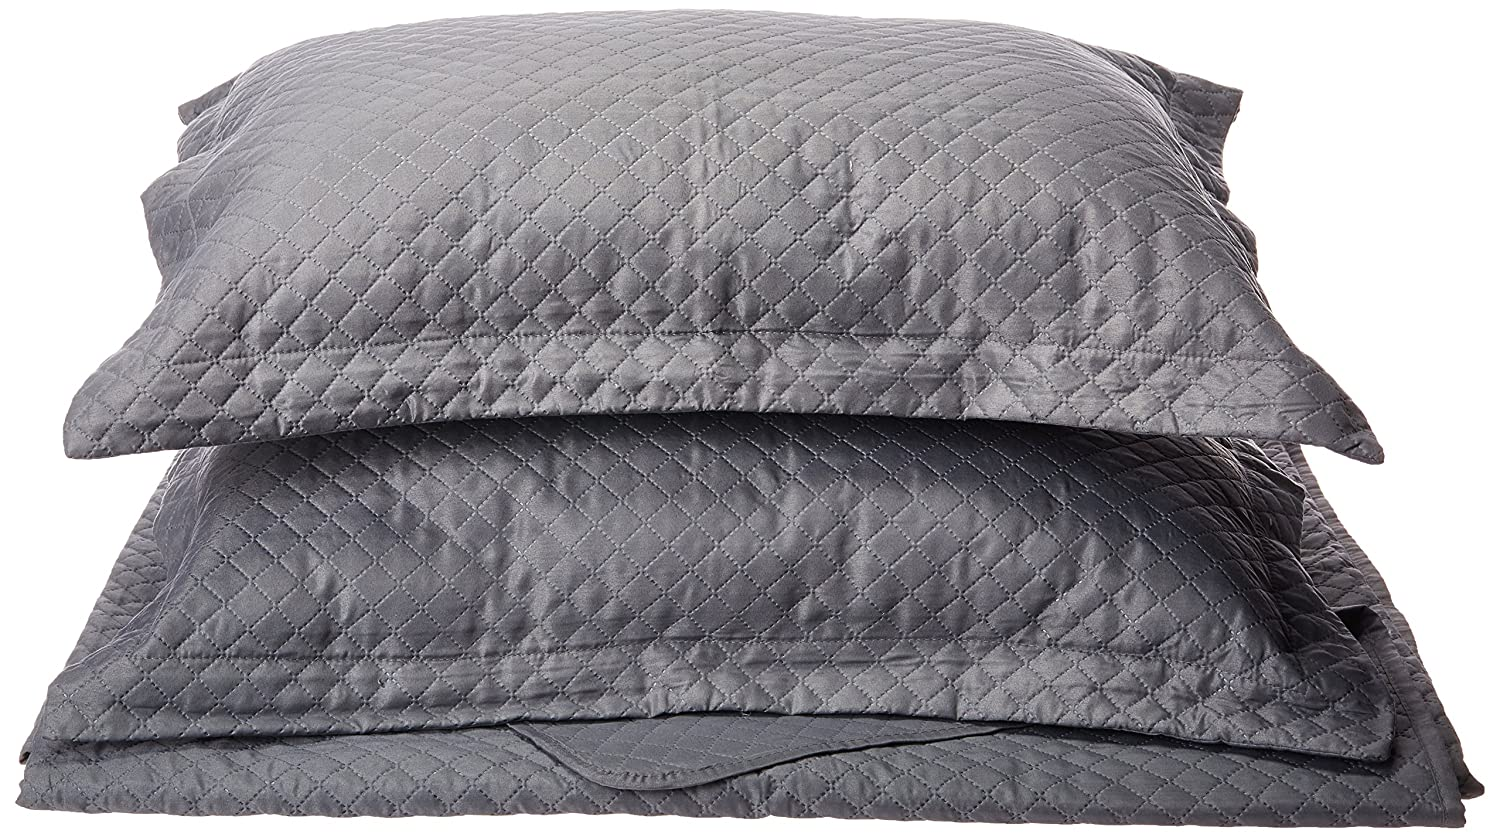 Elegant Comfort Luxury Lightweight 2-Piece Bedspread Coverlet Square Design Quilt Set with Shams Full//Queen Wrinkle /& Fade Resistant All Season White 1RW-Coverlet Set-Plaid-Queen White Hypoallergenic